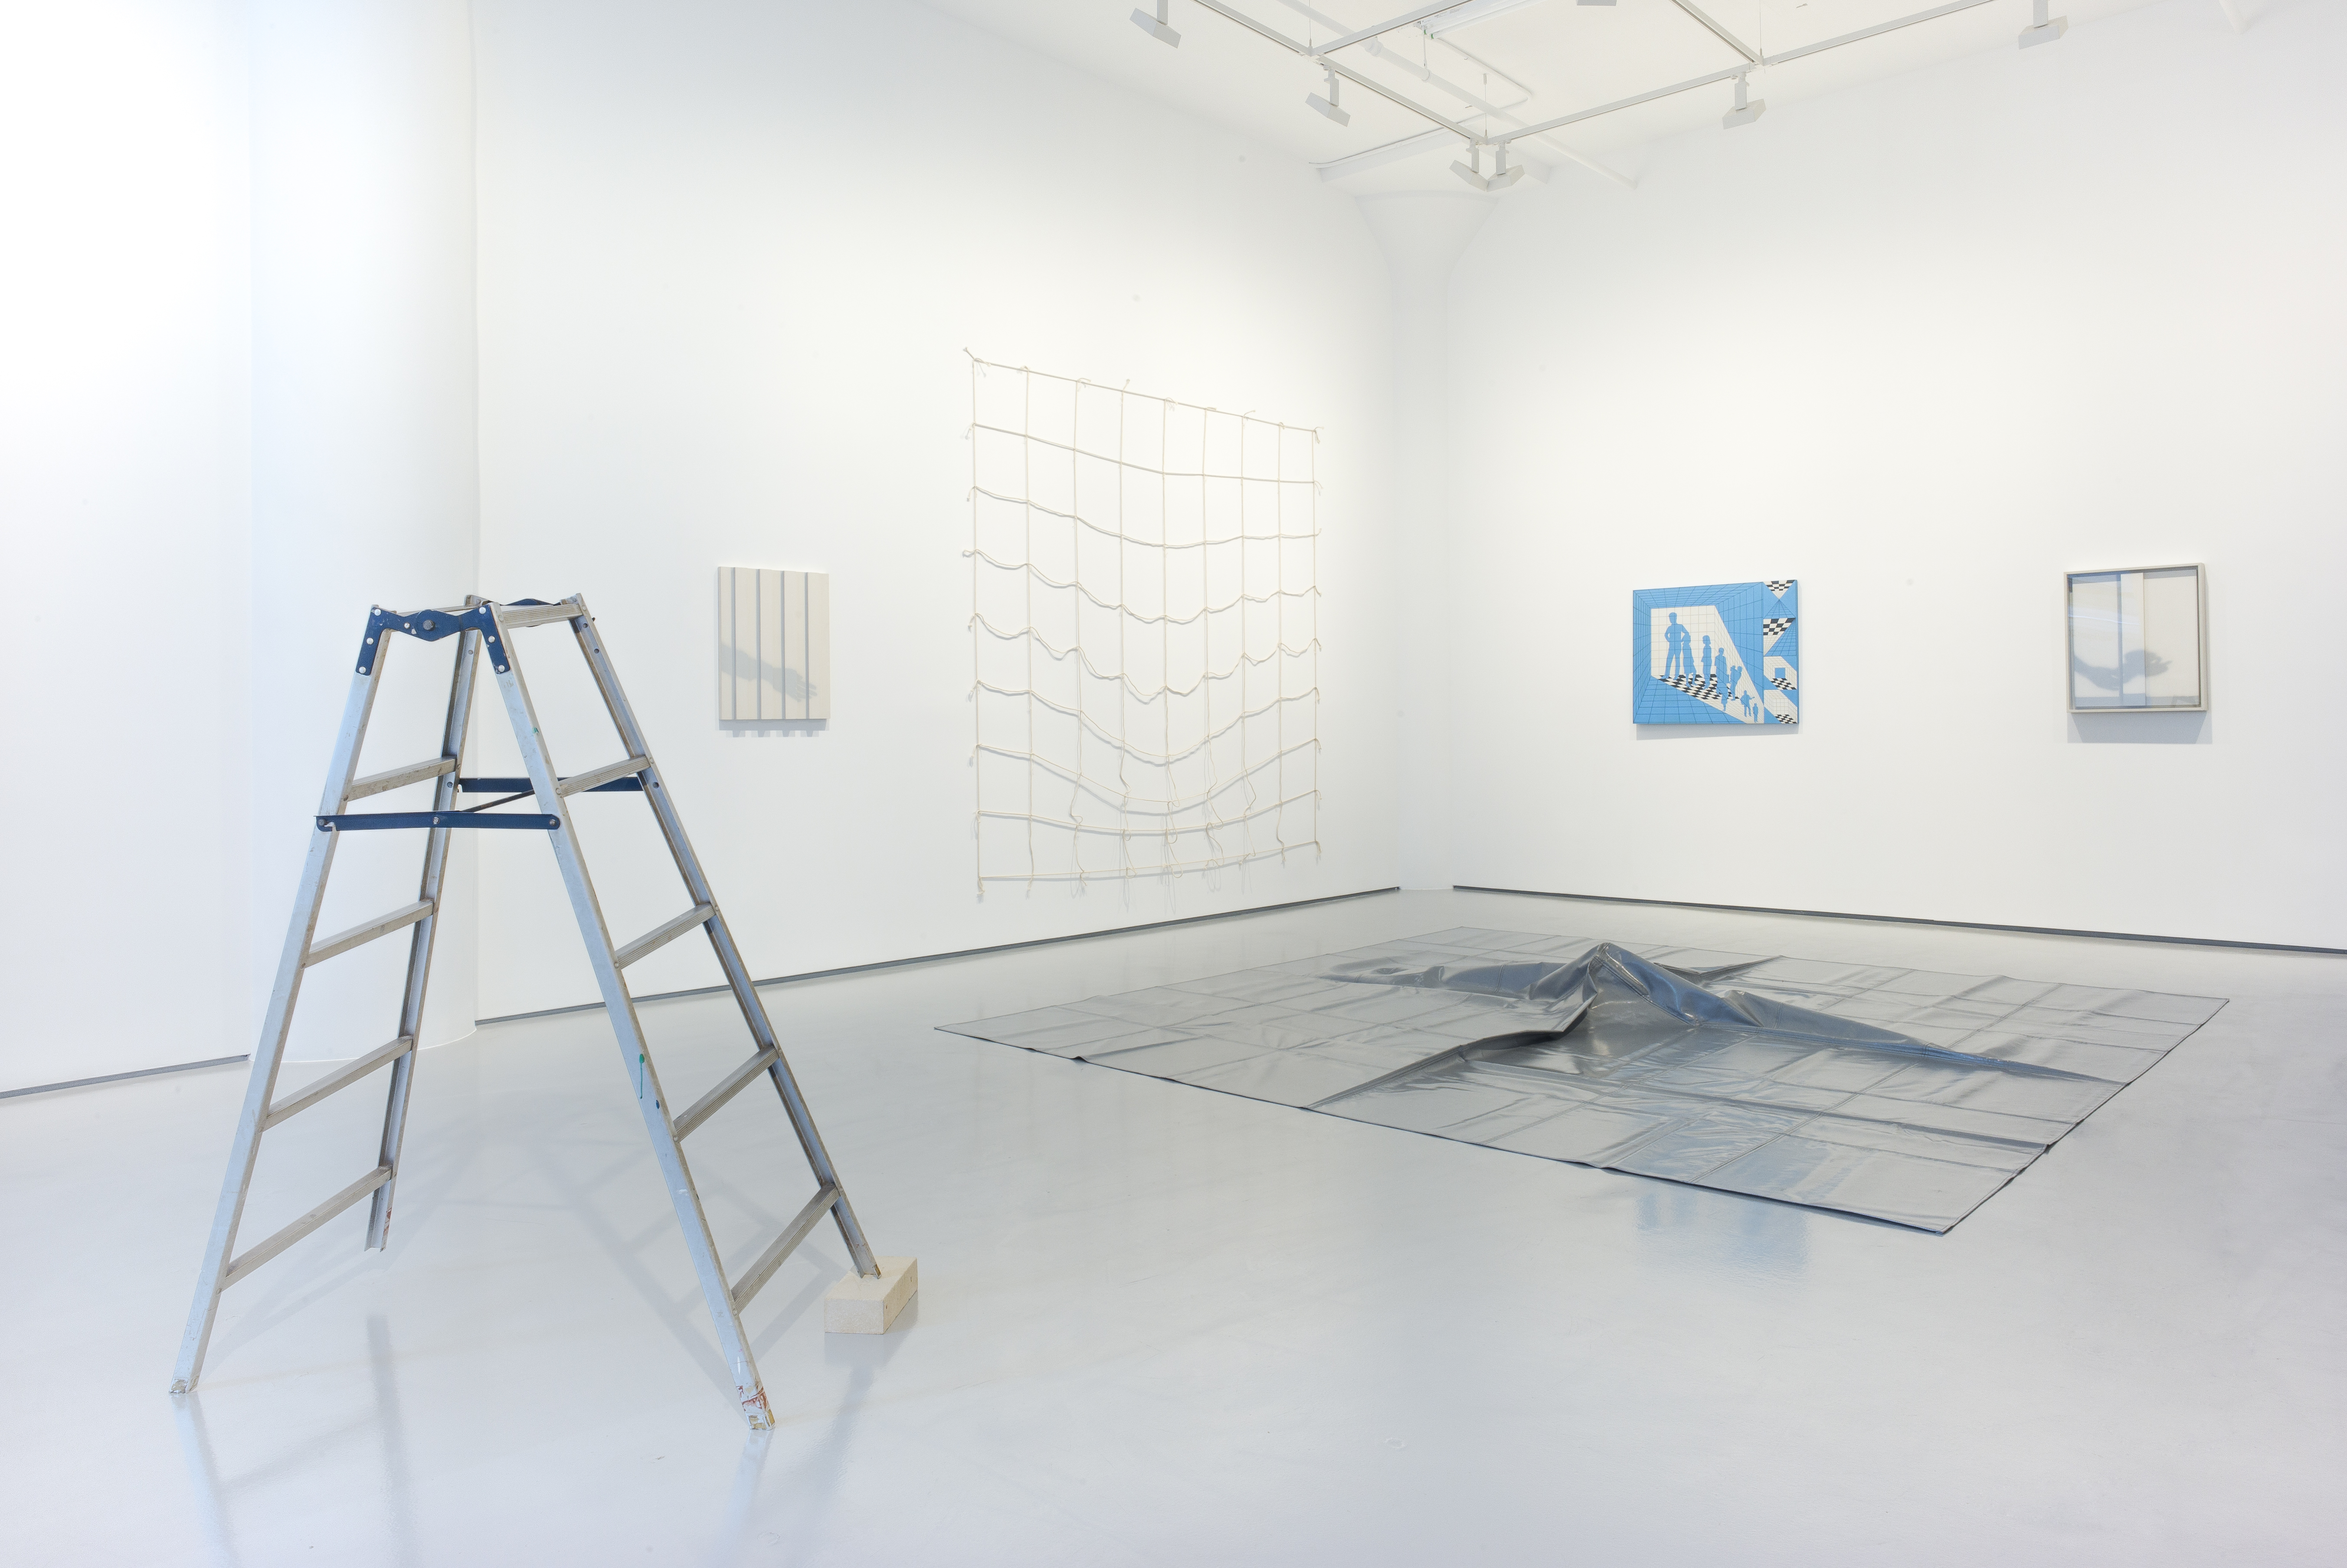 Photograph 2 from Jiro Takamatsu: From Shadow to Compound exhibition.